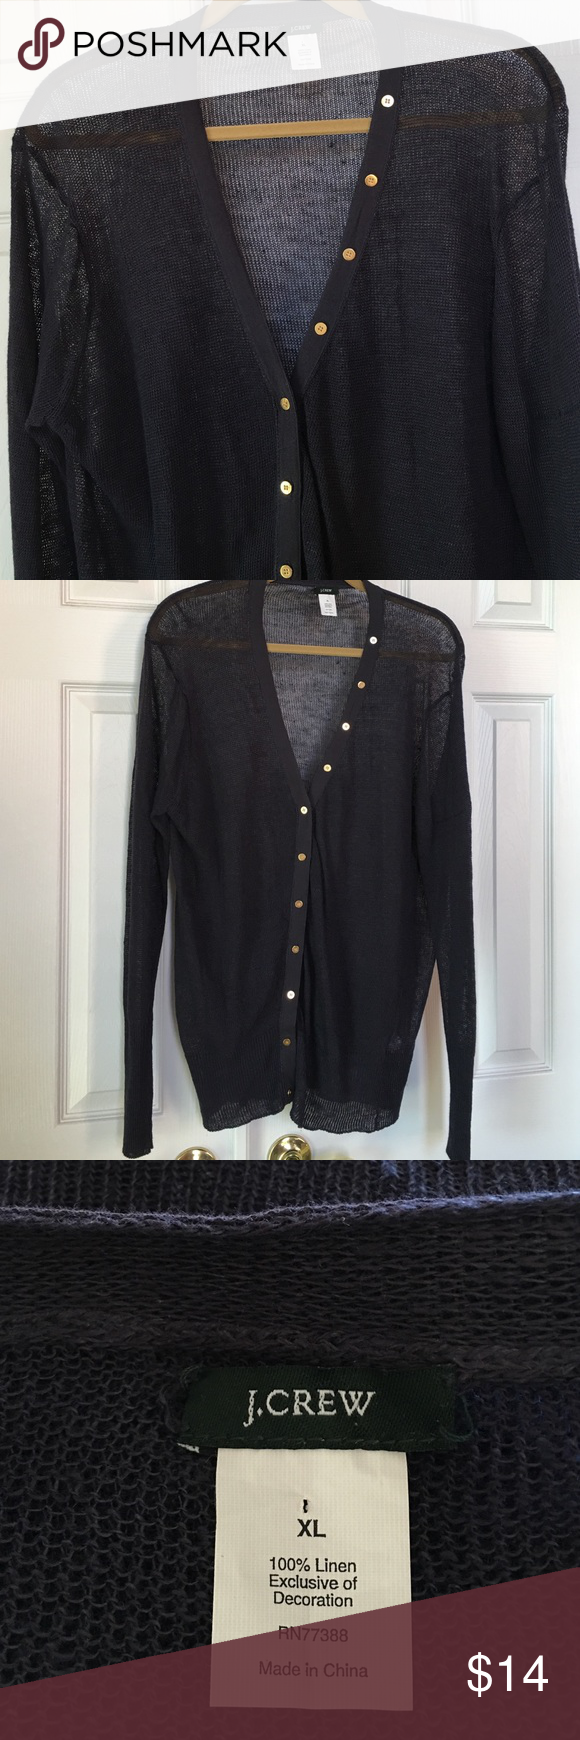 J.Crew Cardigan | Metal buttons, Linens and Conditioning